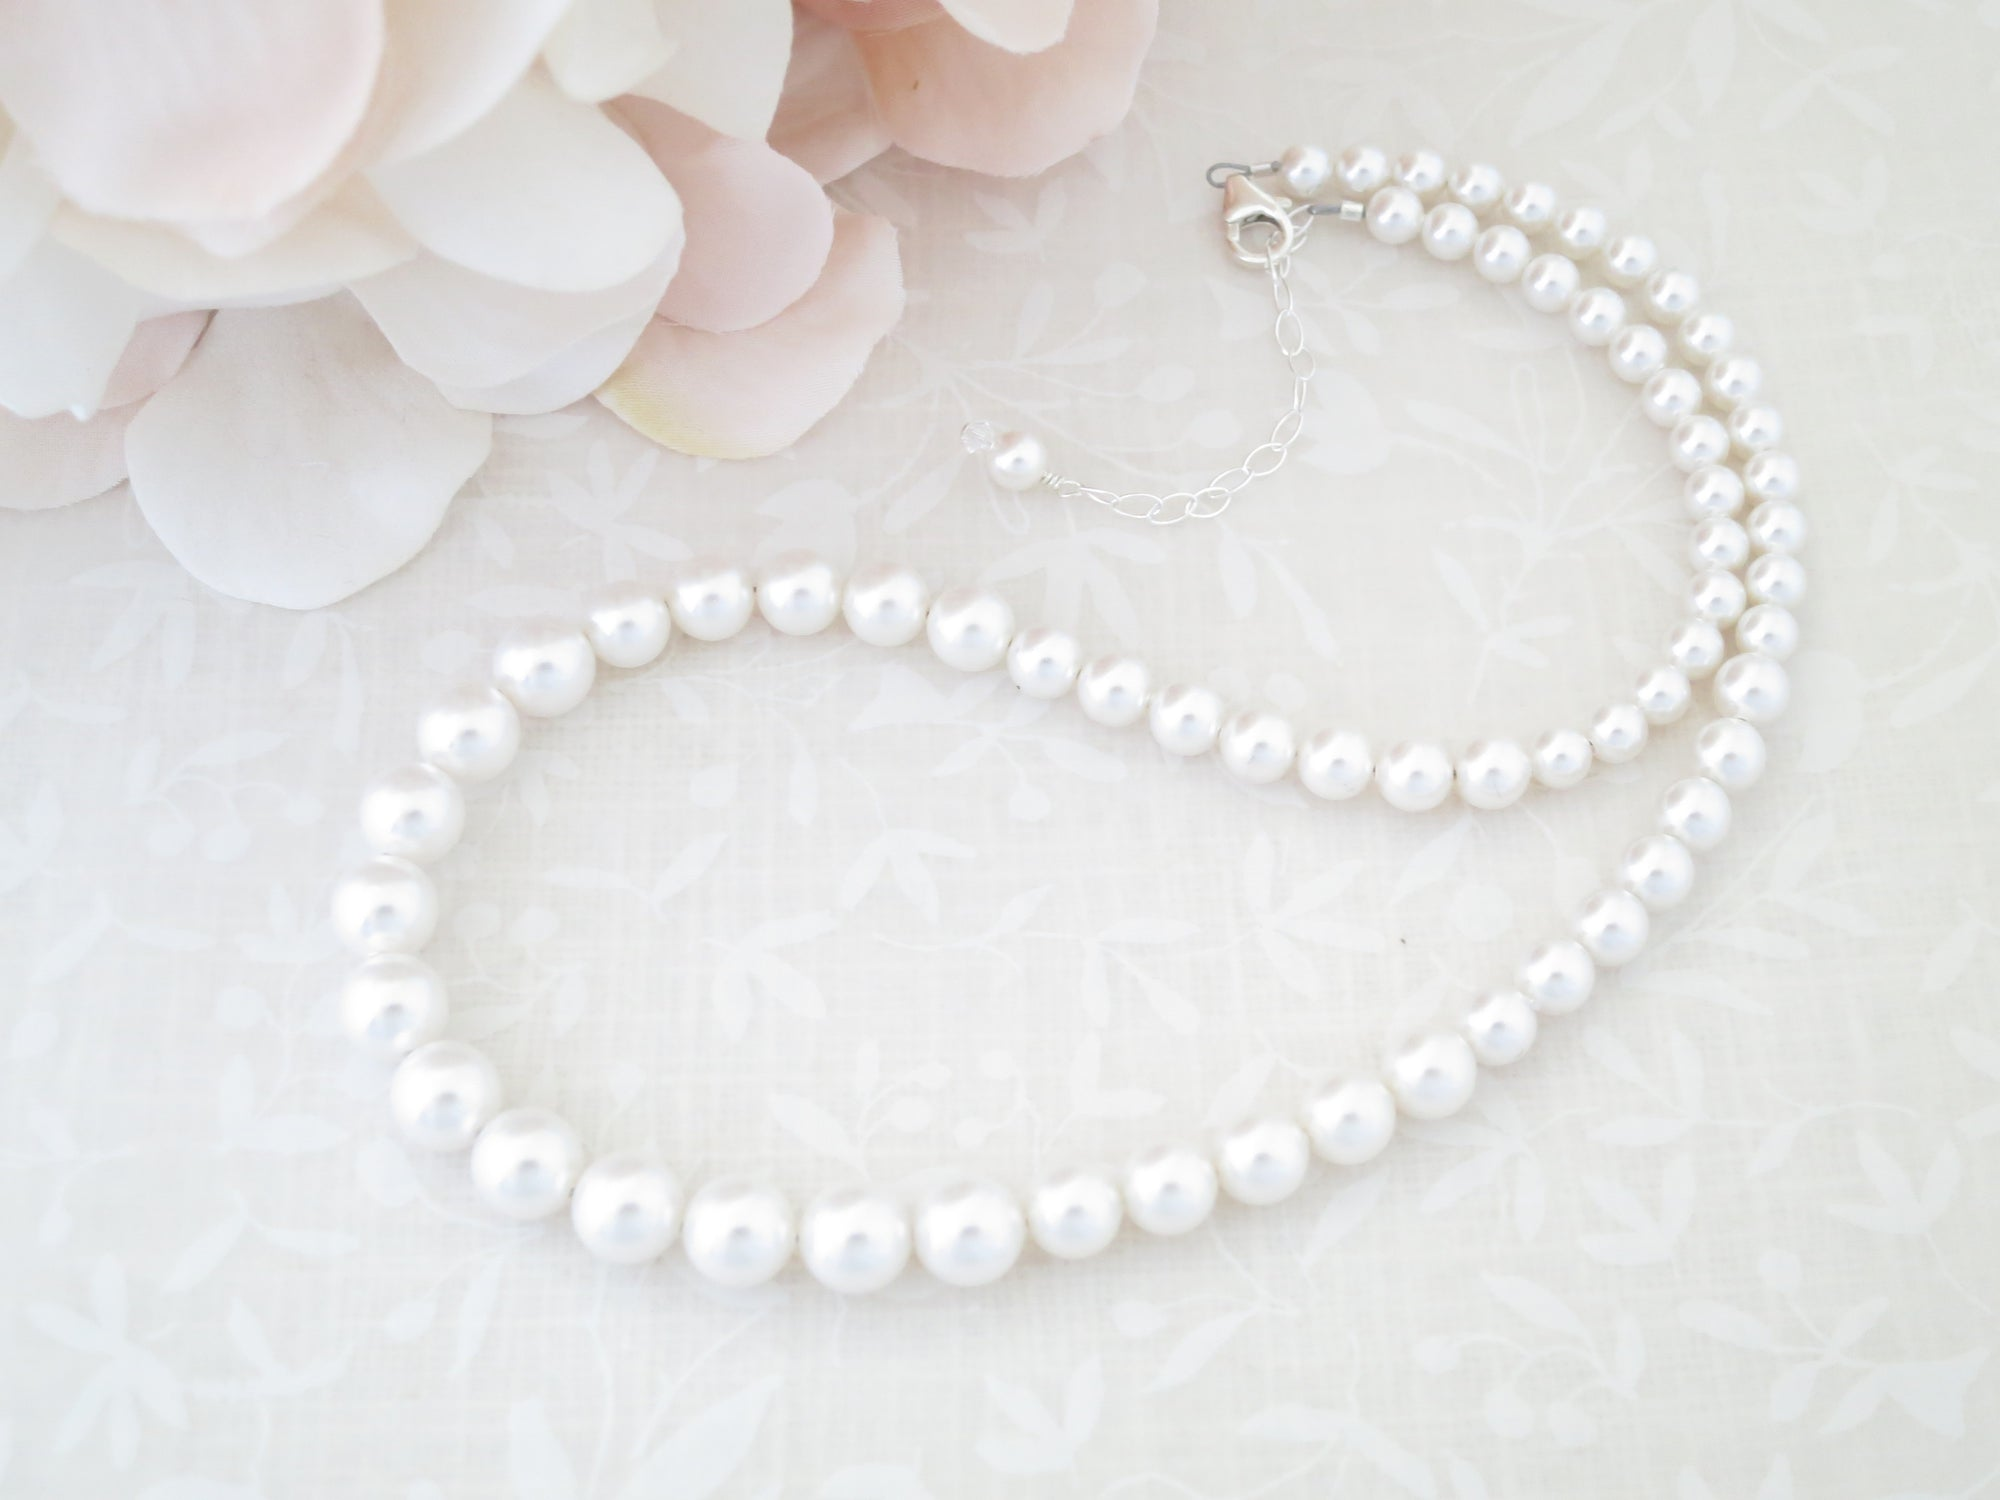 FEY:  Classic Pearl Bridal Necklace - BlingBaddaBoom - Minimalist, Vintage, Modern Wedding and Bridal Jewelry